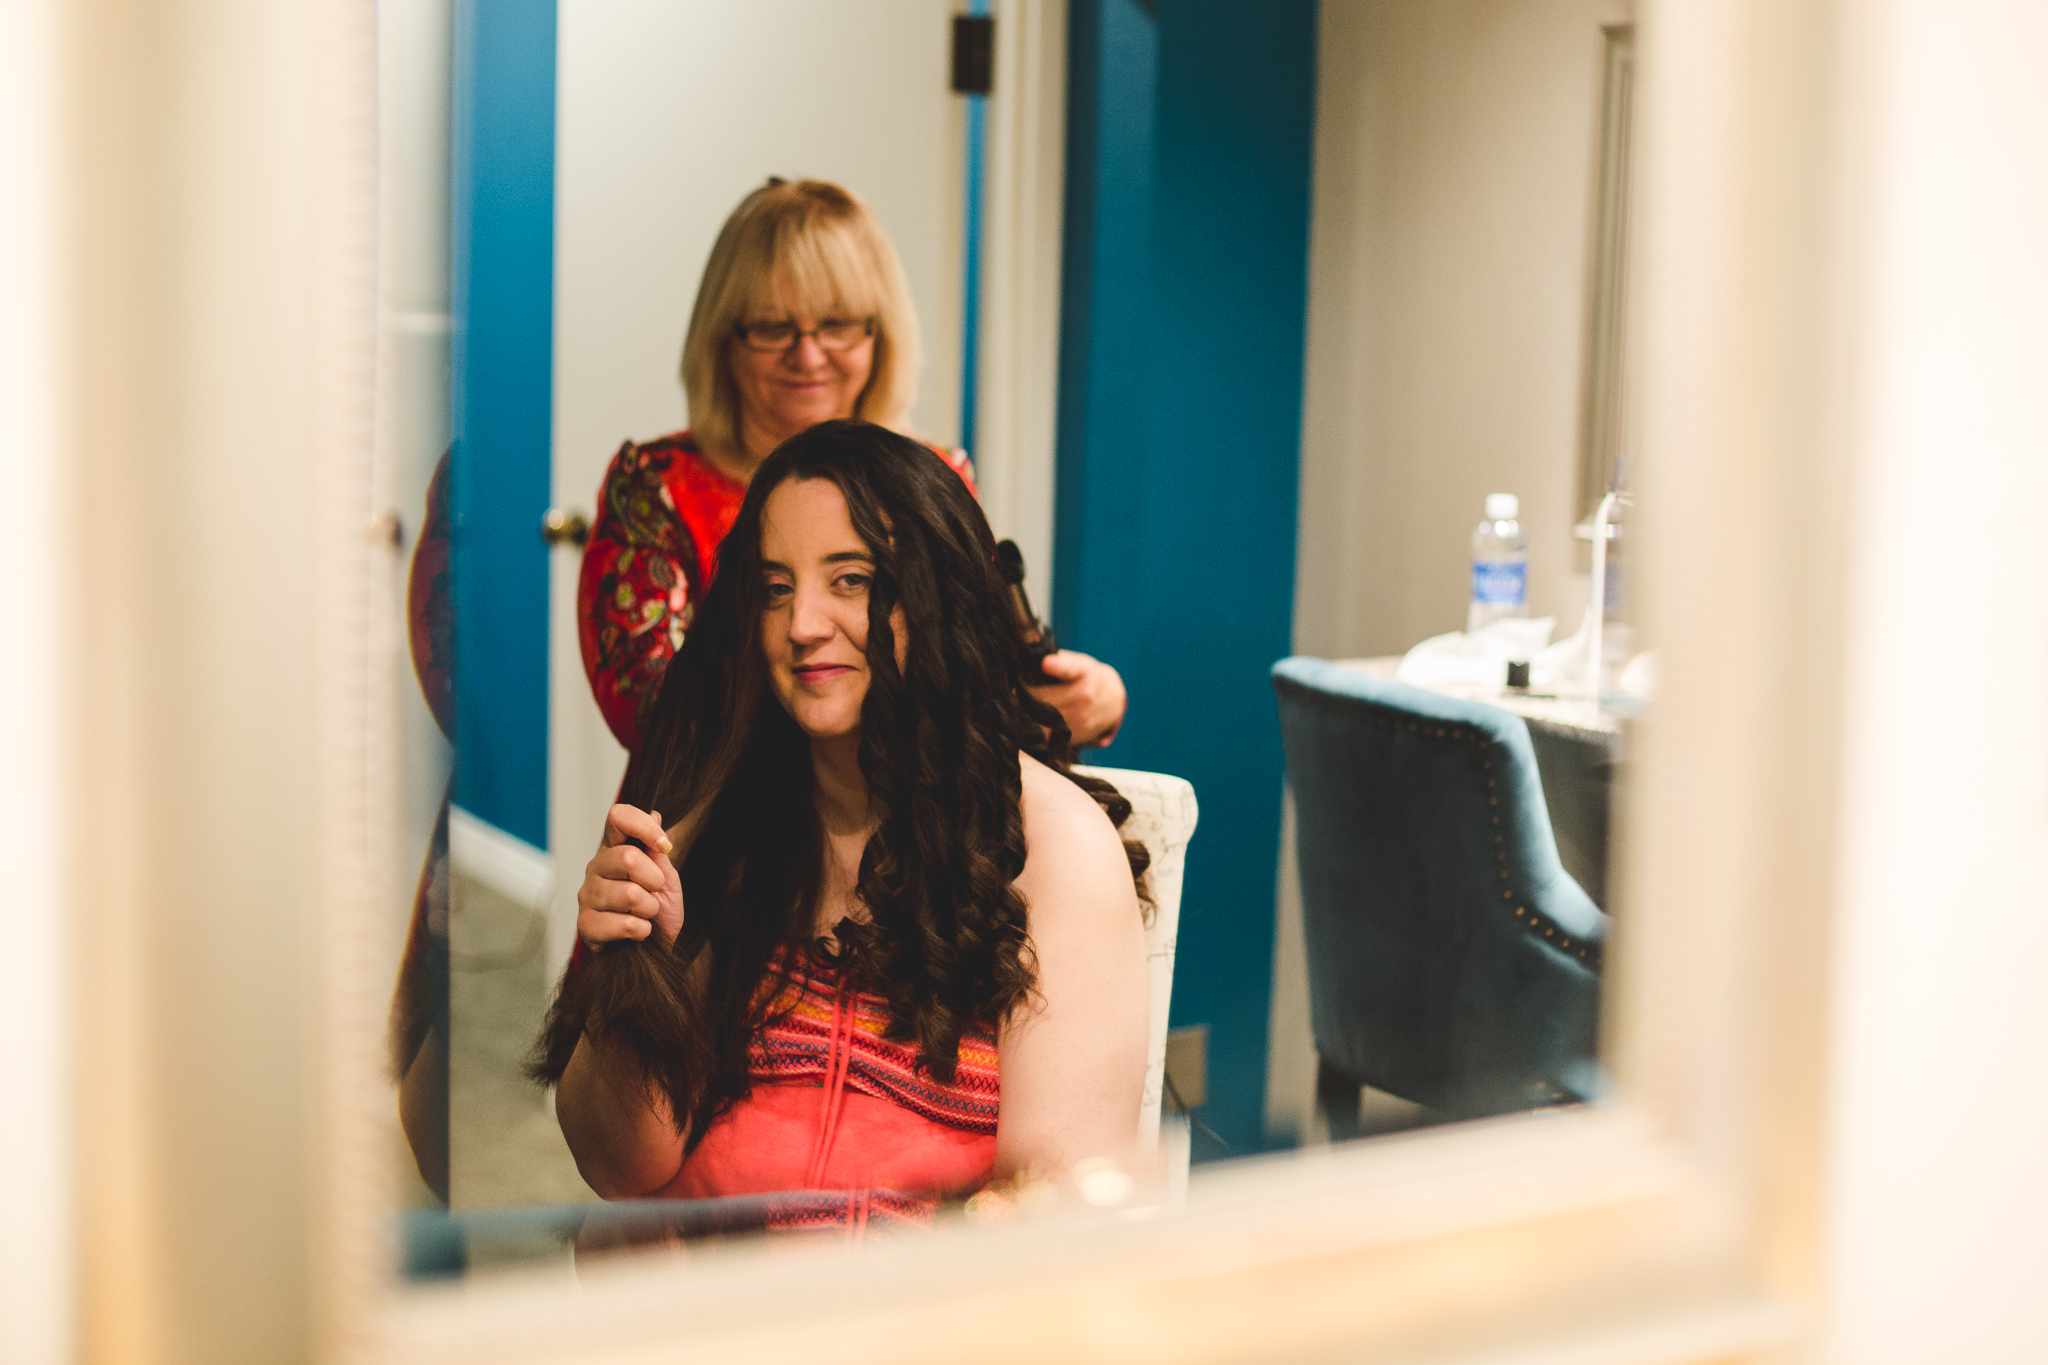 rs samantha smiles as hair gets done